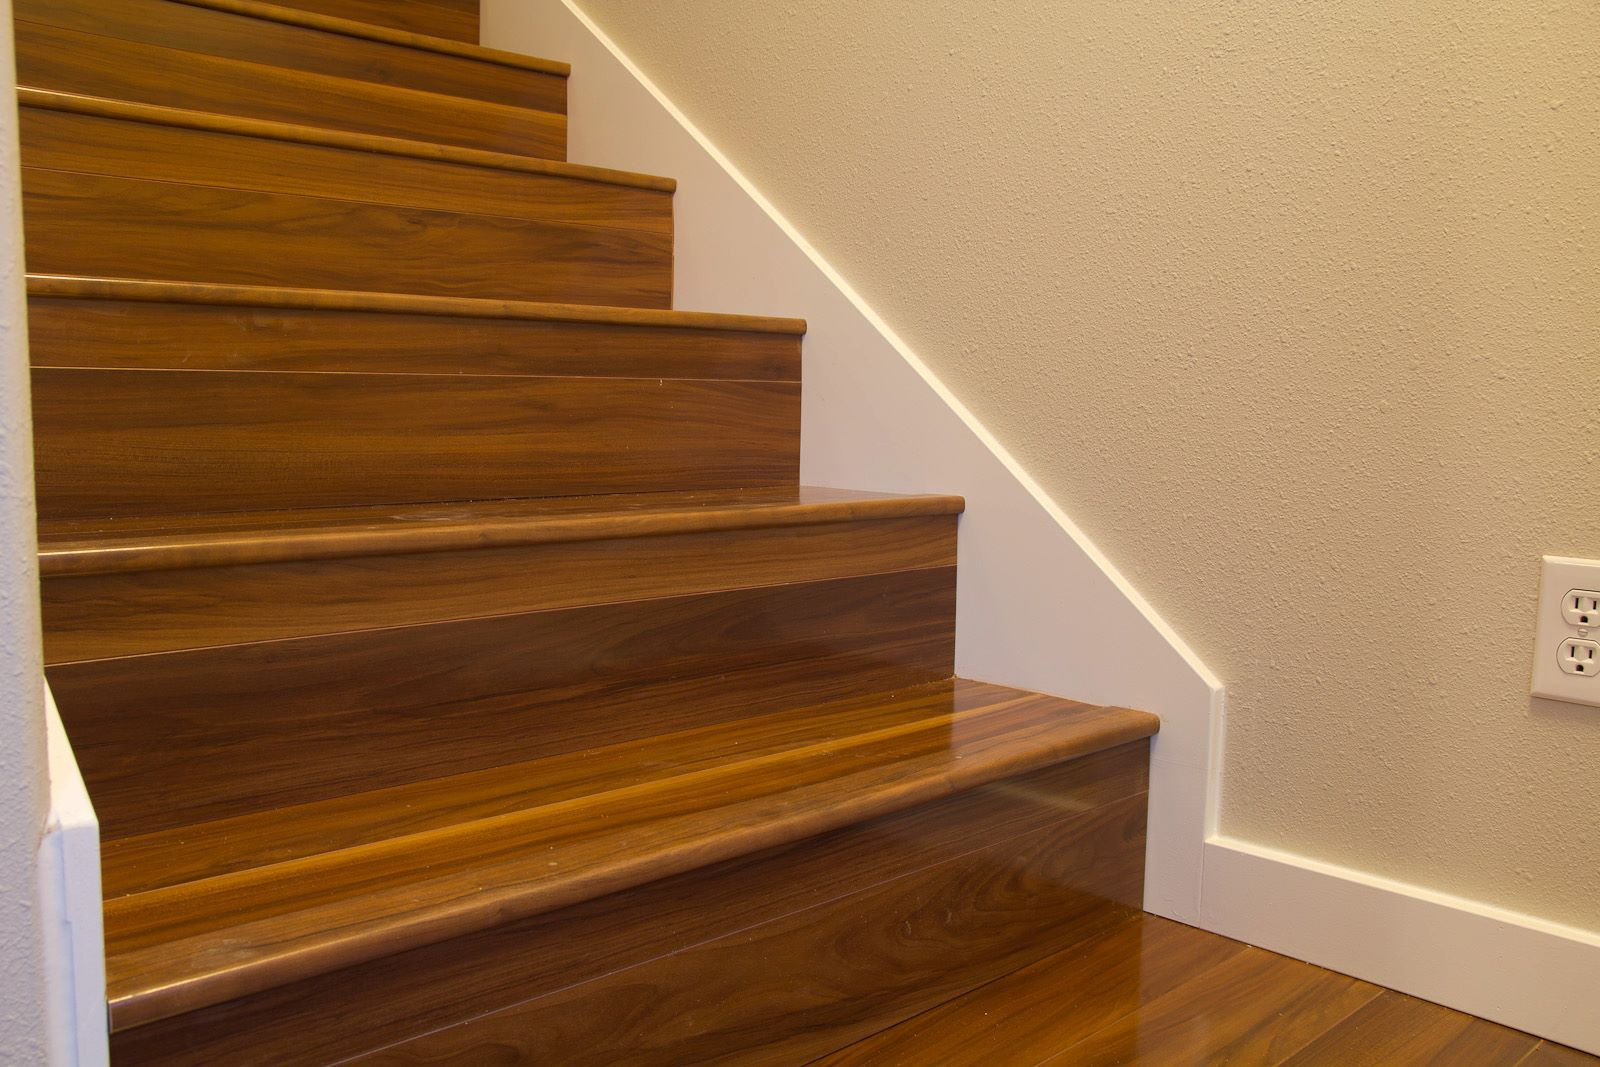 hardwood flooring toronto installation price of can you install laminate flooring on stairs you may be wondering regarding can you install laminate flooring on stairs you may be wondering how to match your stairs with your beautiful laminate floors we answer this frequently